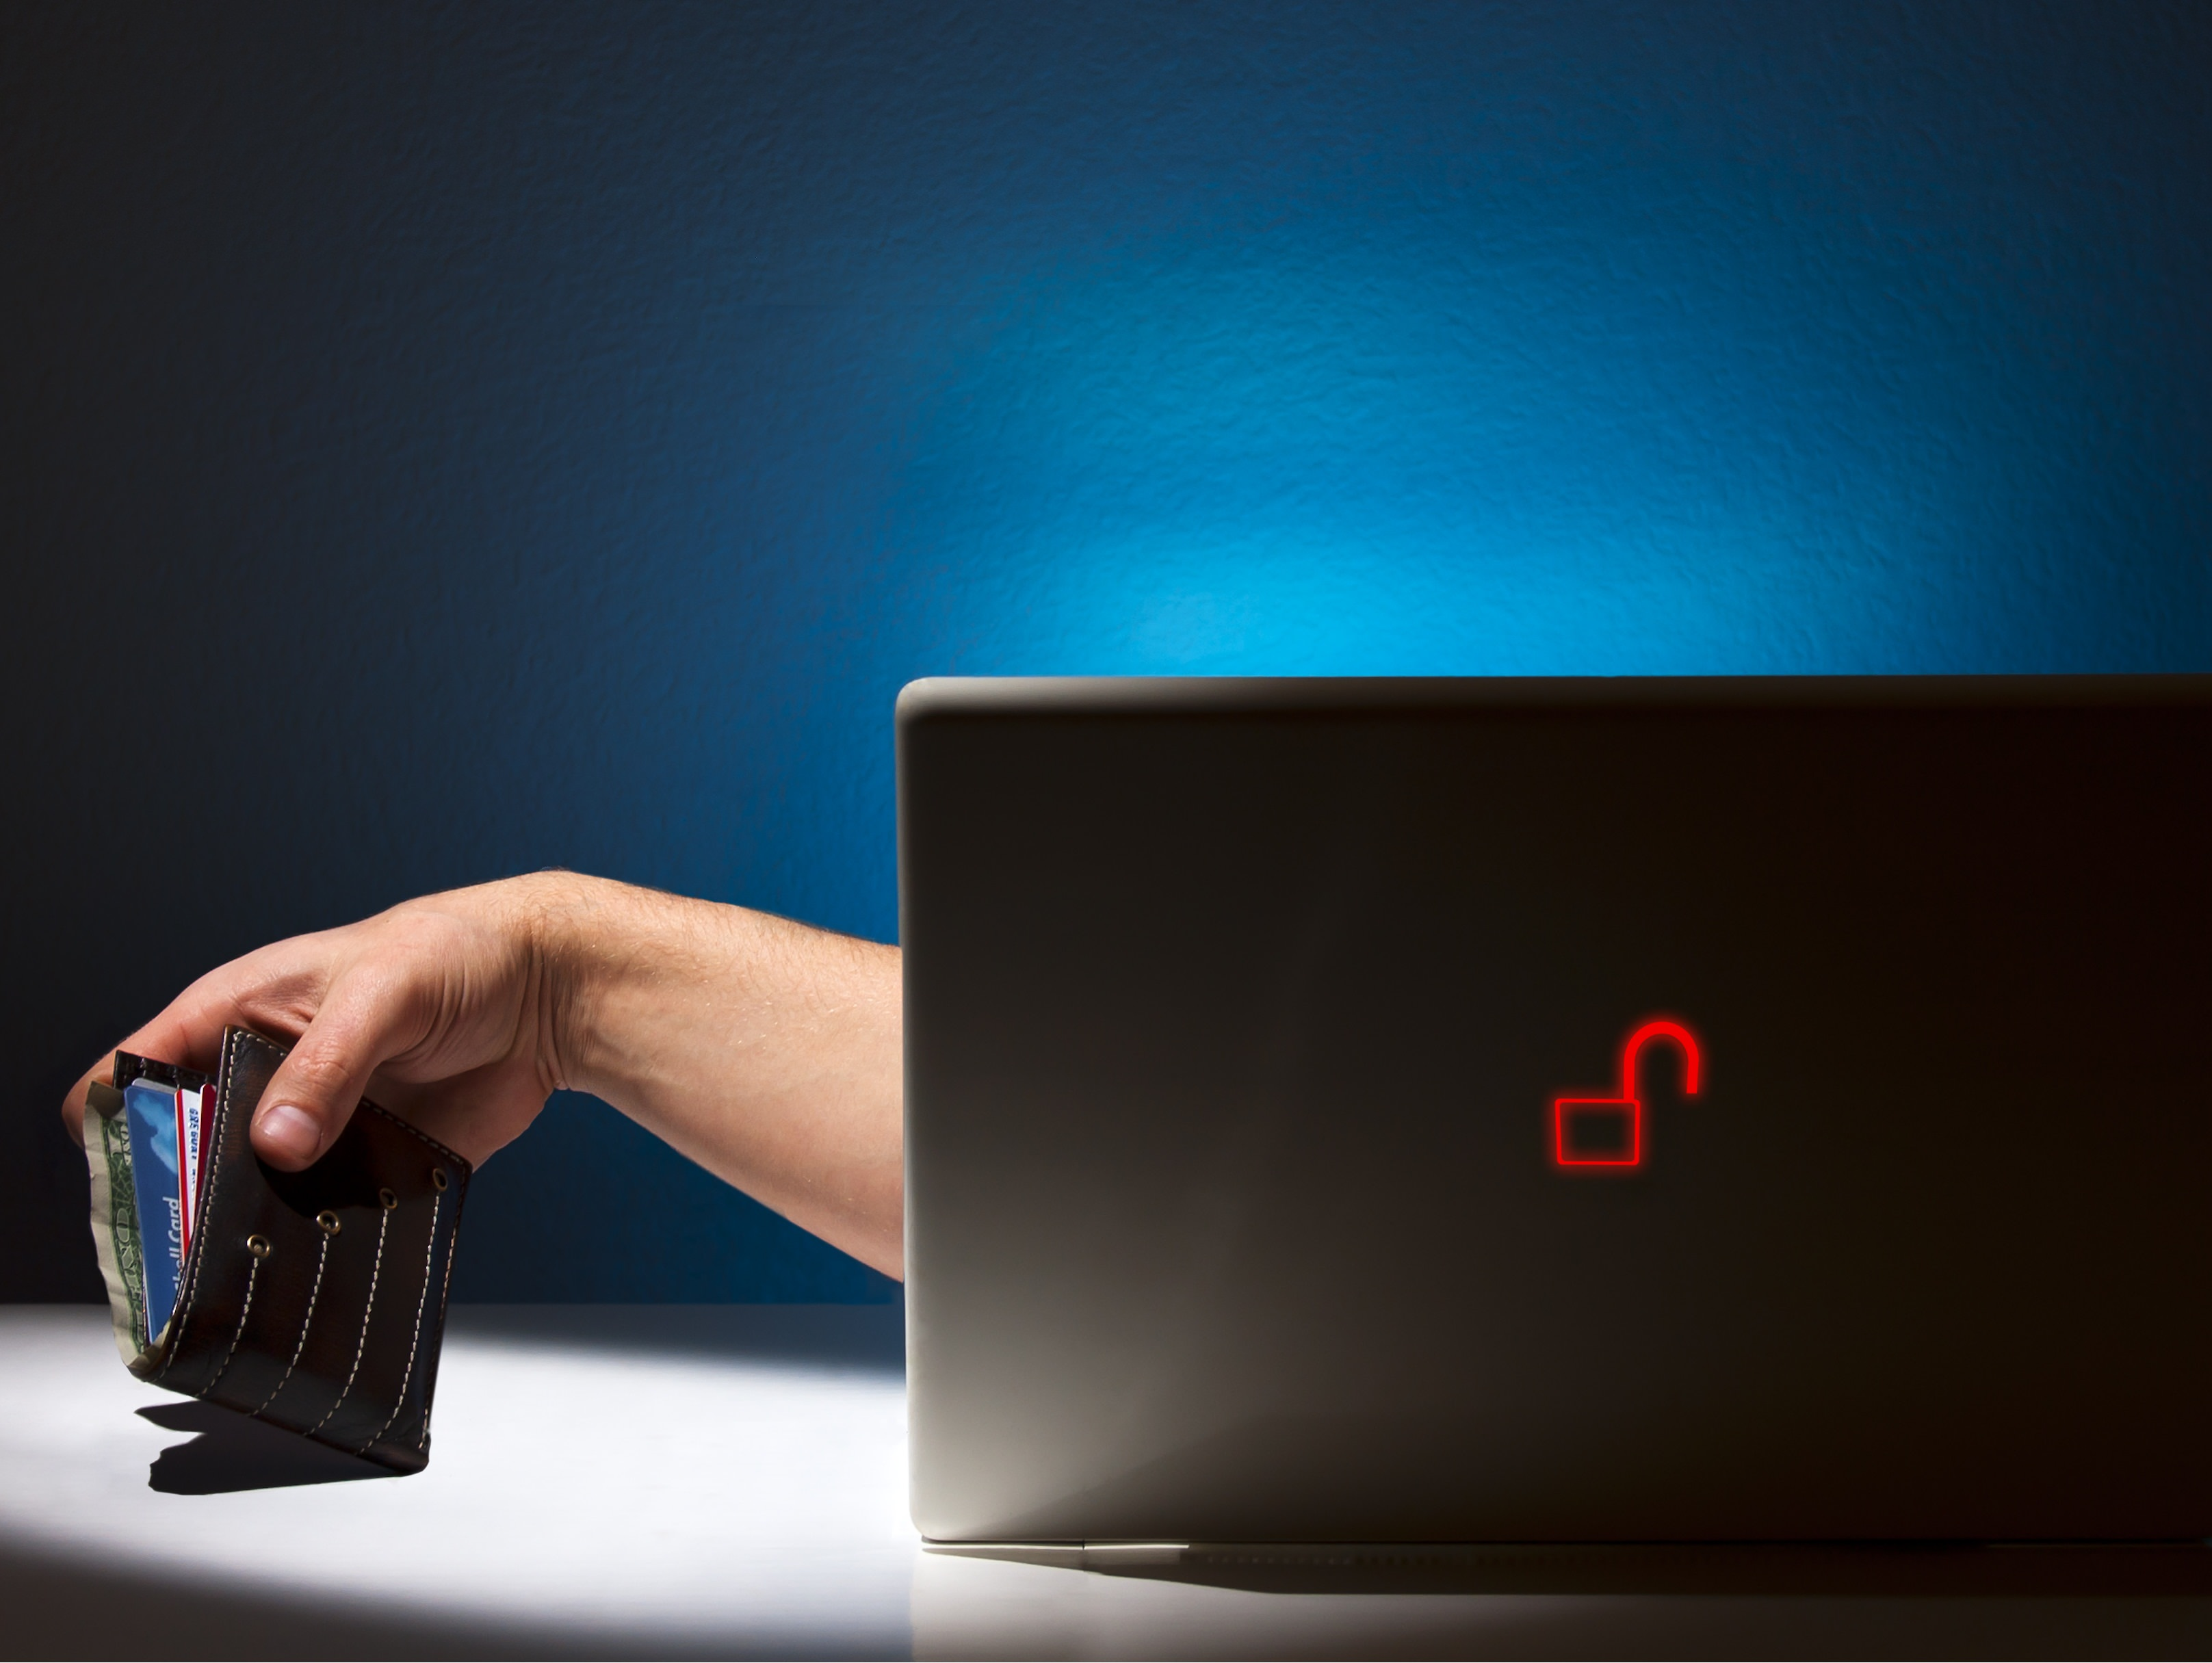 Internet Theft and Fraud From an Unsecure Laptop